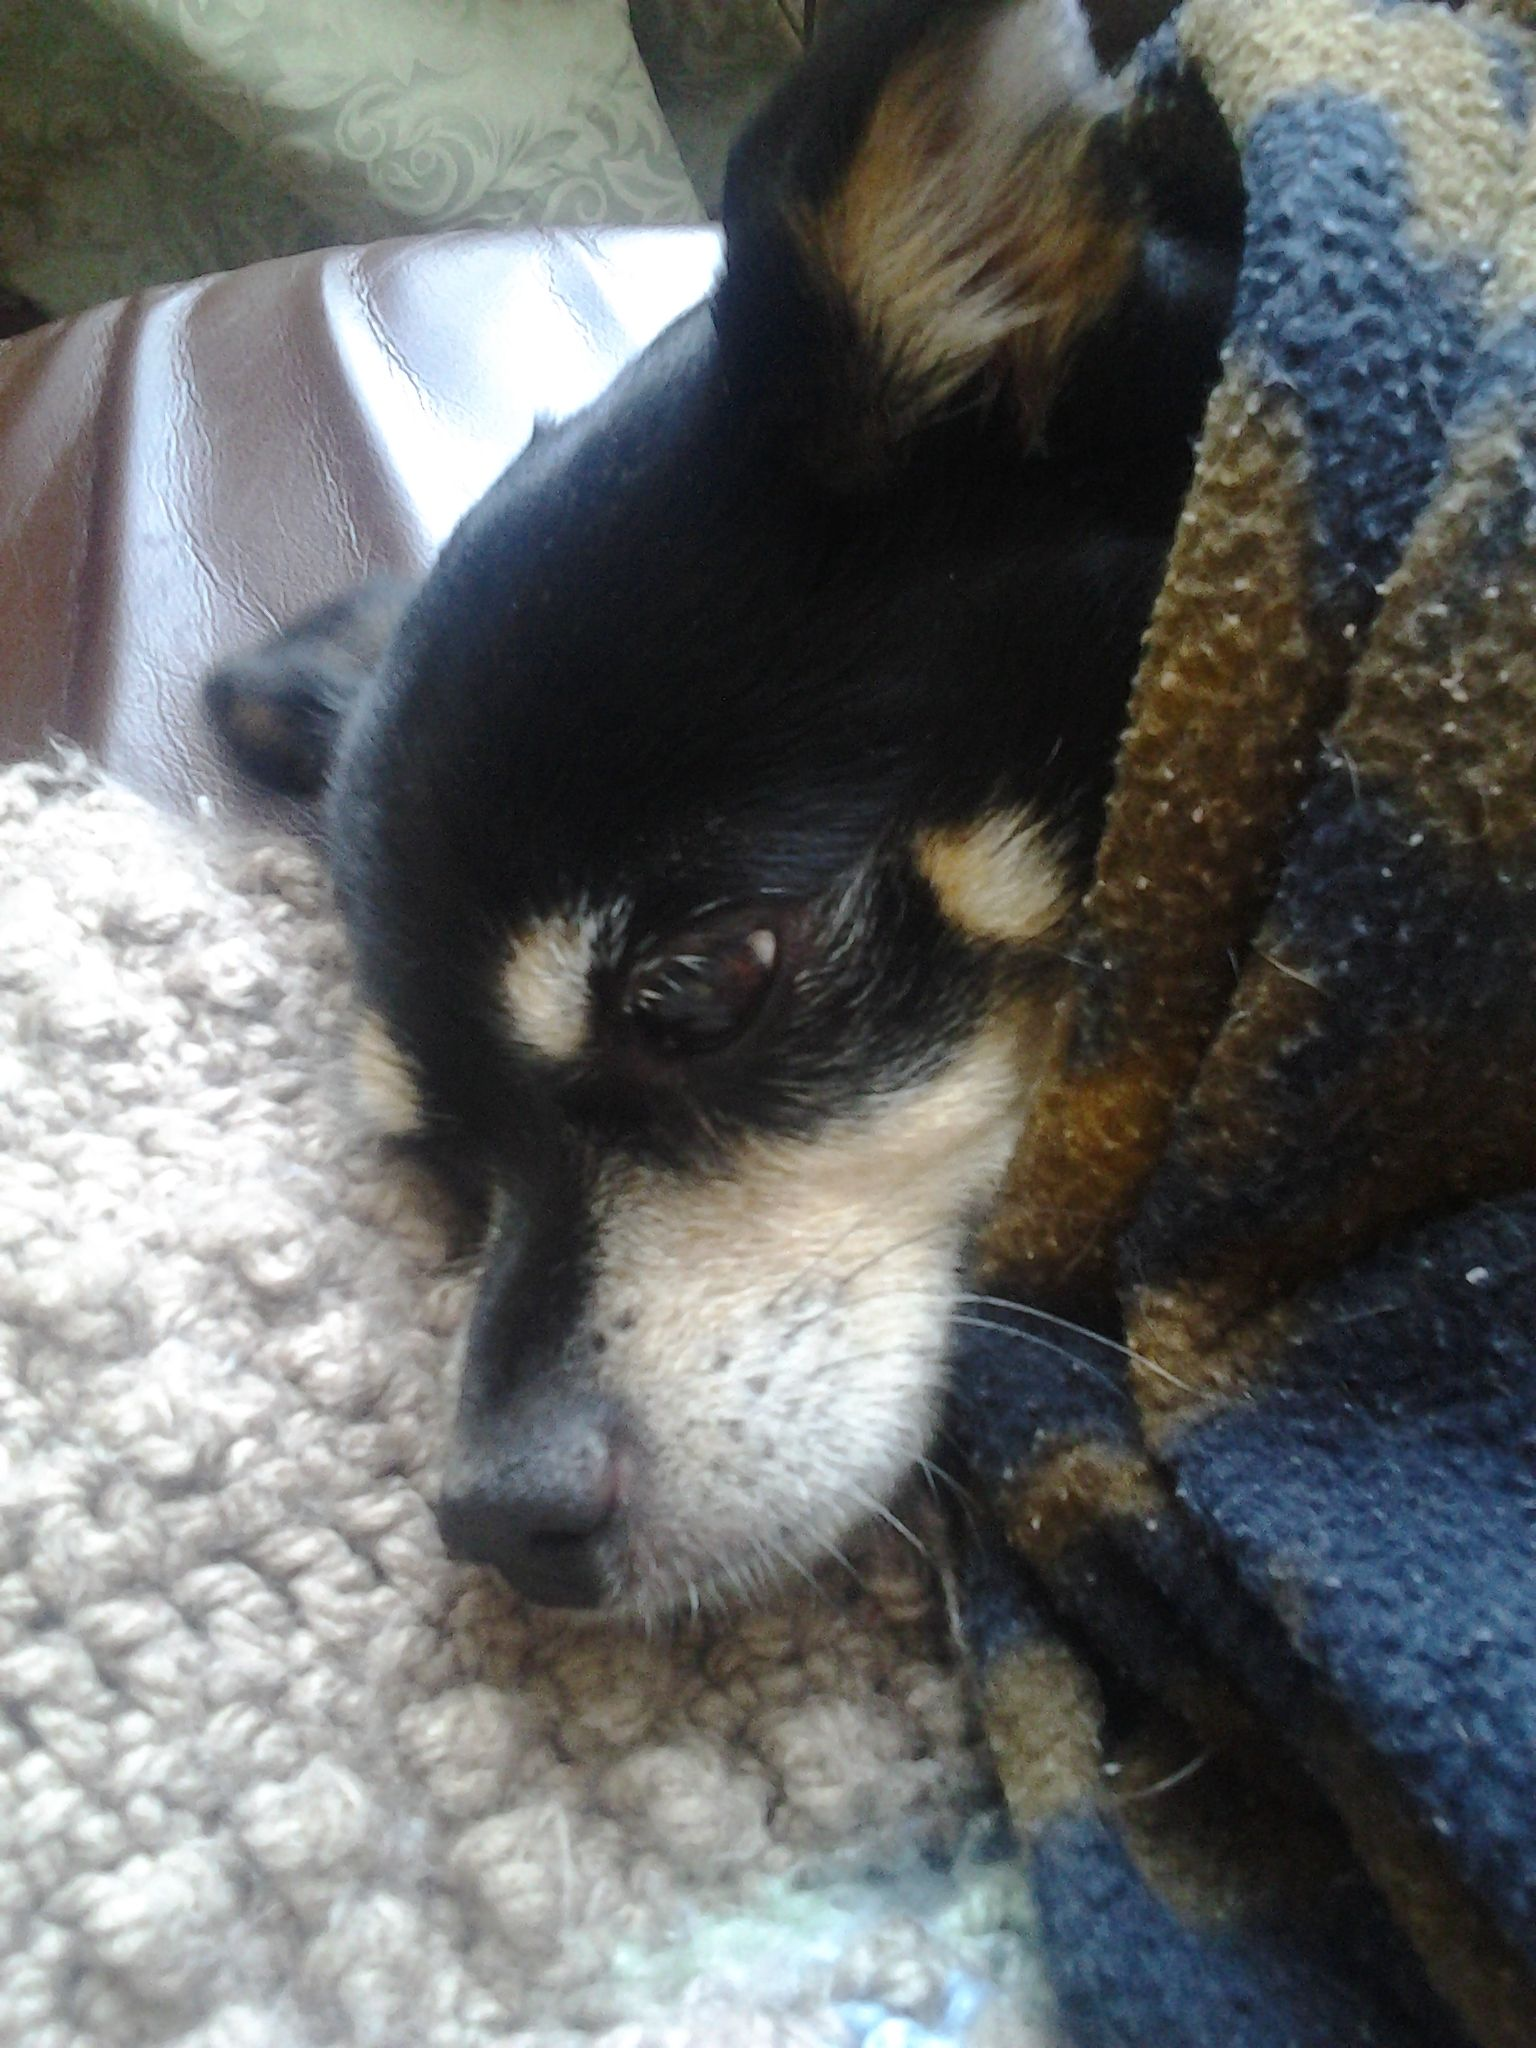 Winter's coming...brrrr...chihuahua wrap up like a burrito...